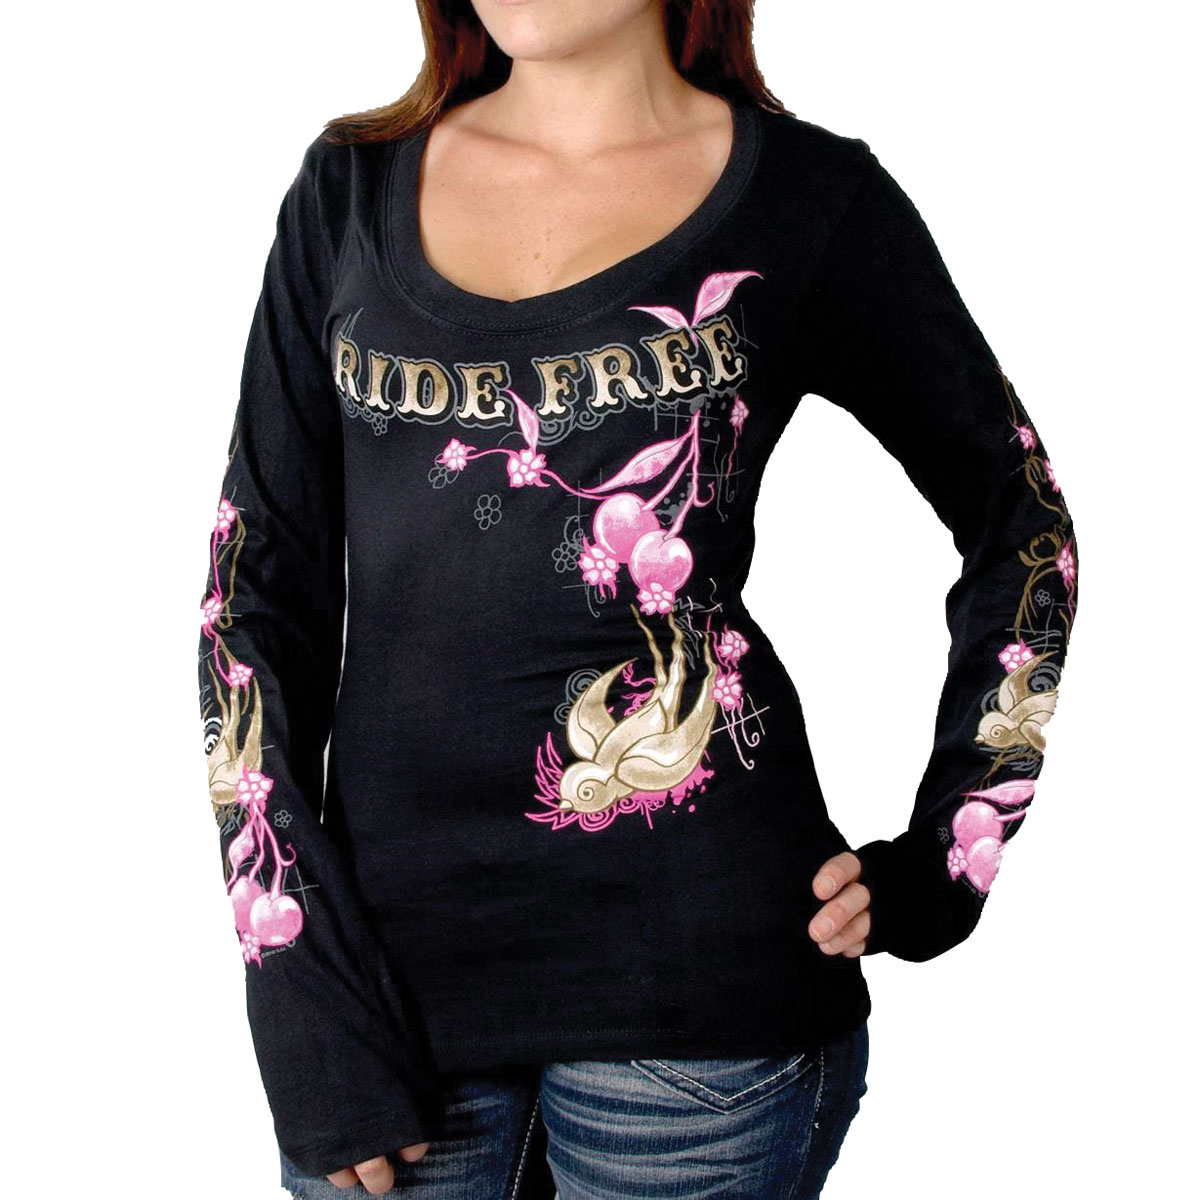 Hot Leathers Ride Free T-shirt